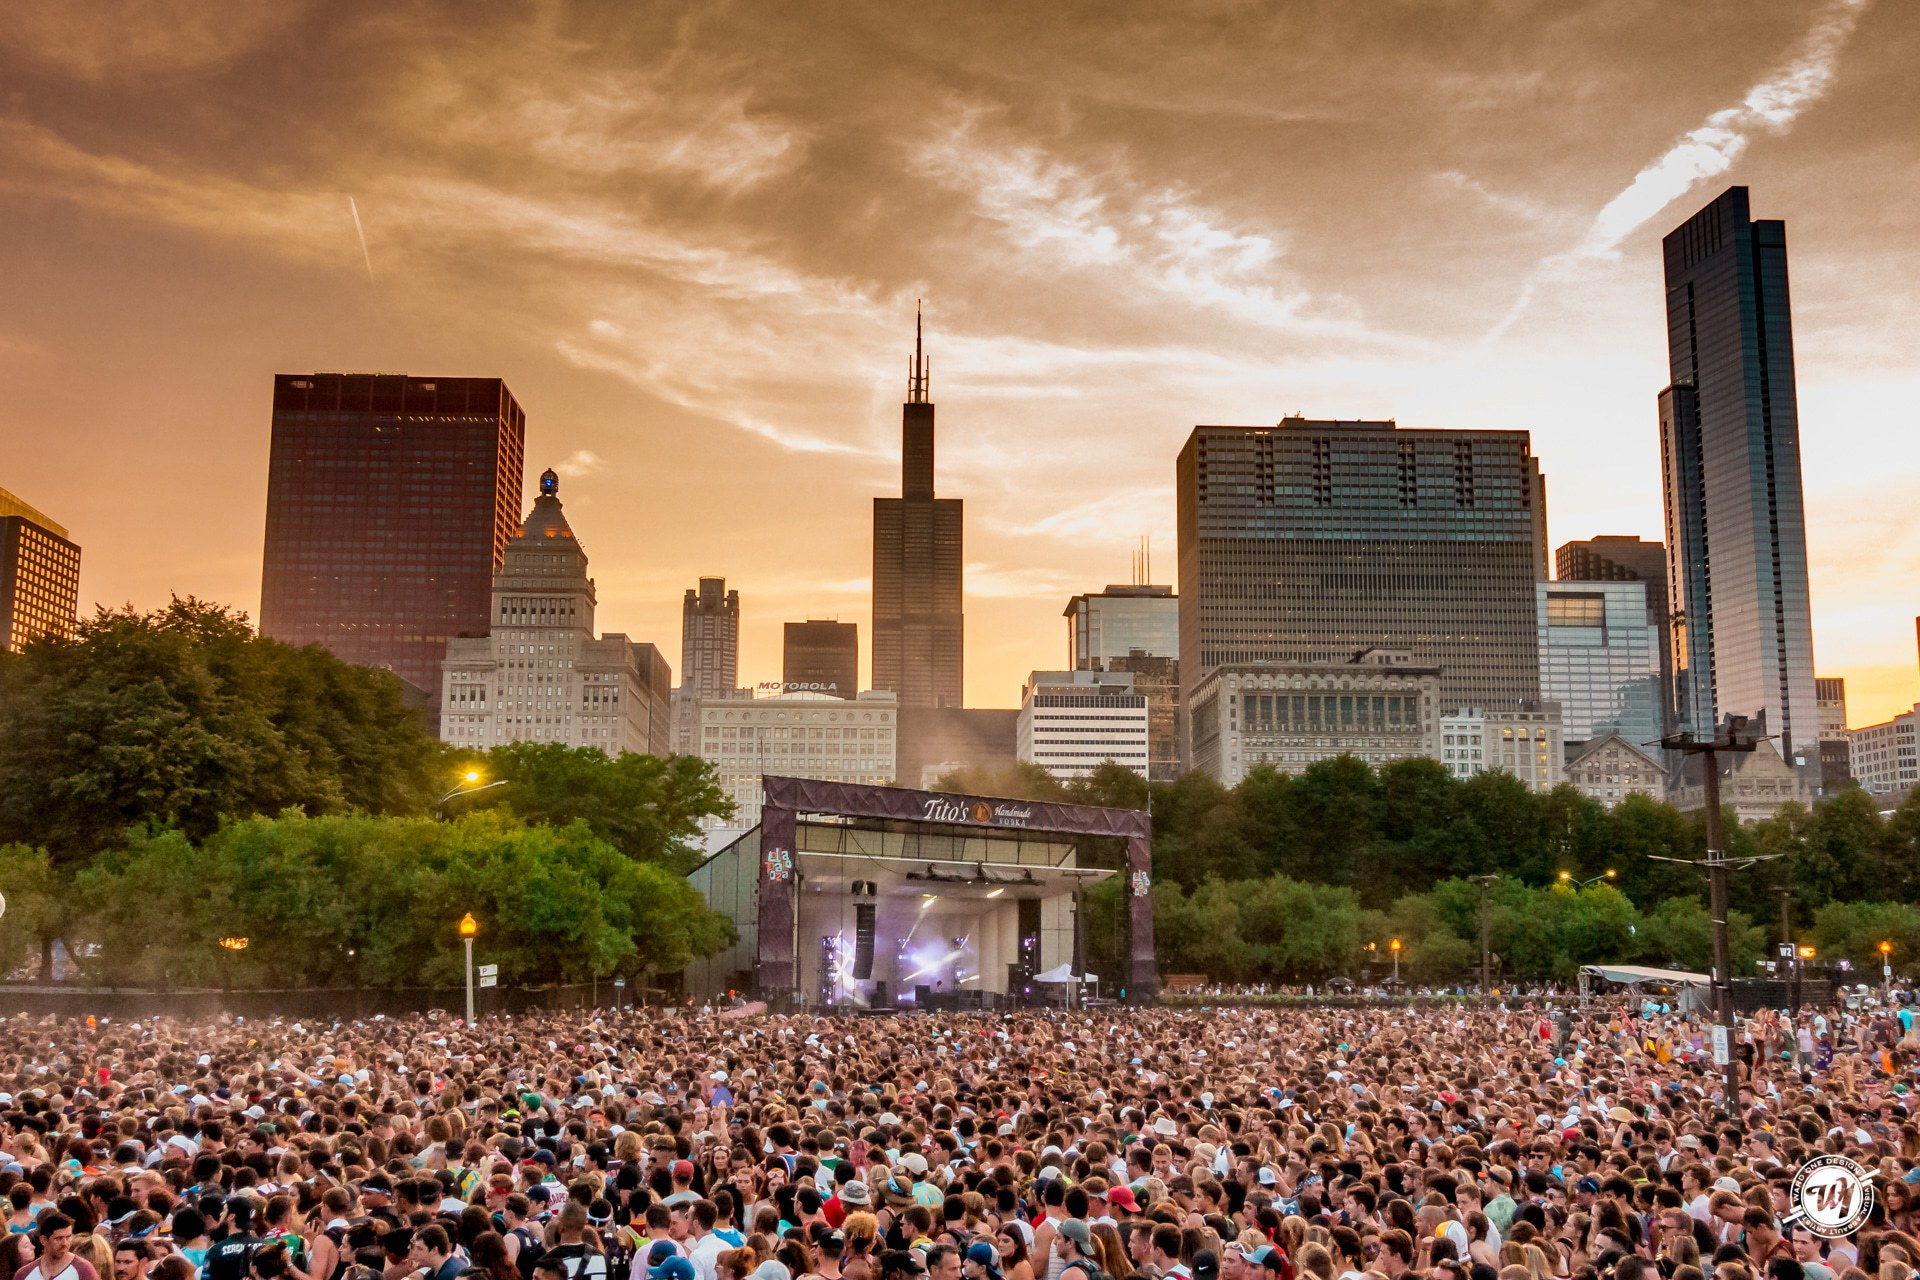 LollaPalooza 2018 Chicago